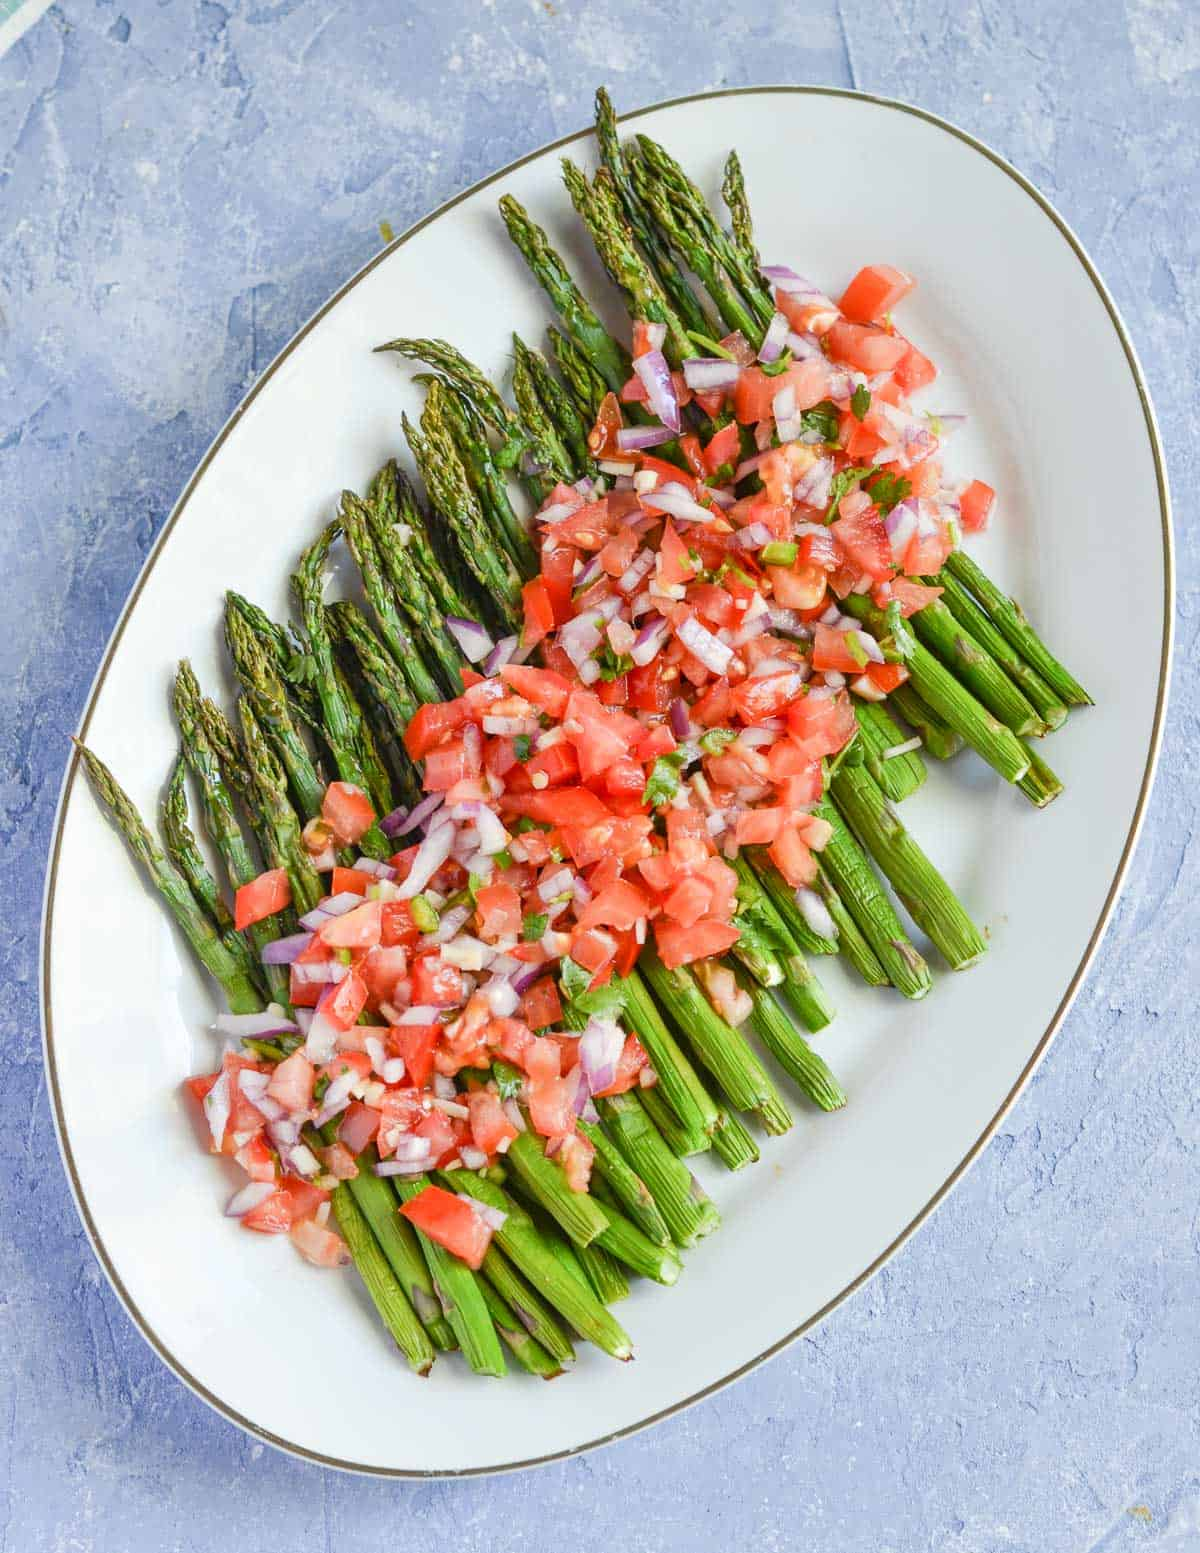 roasted asparagus served in a oval platter with pico de gallo.